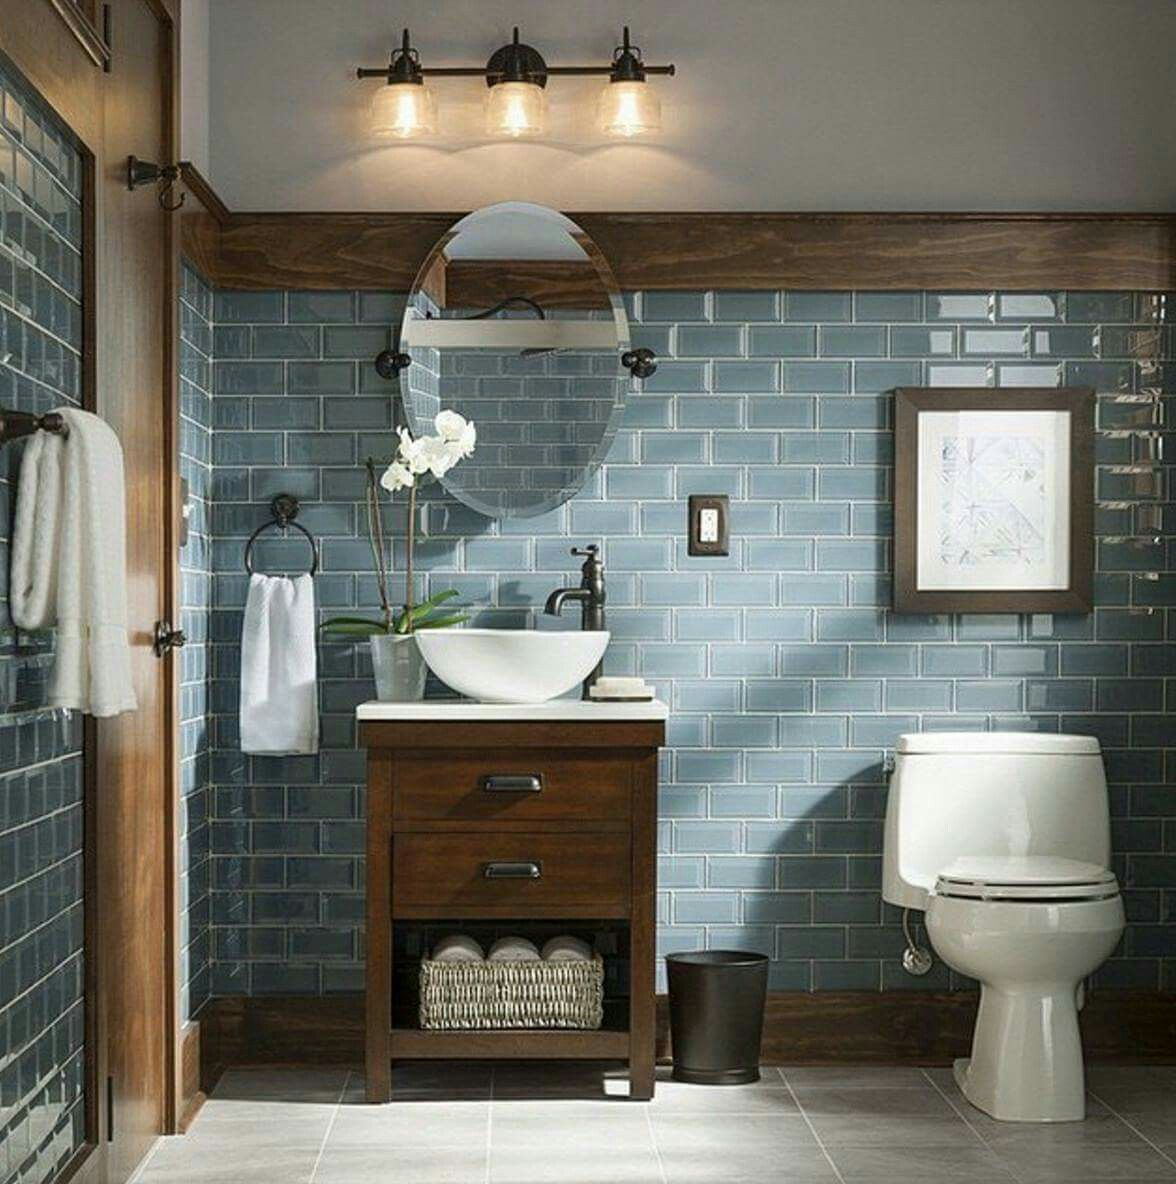 Glass Tiles In Bathroom: Rustic And Modern Bathroom Blue Grey Glass Tiles